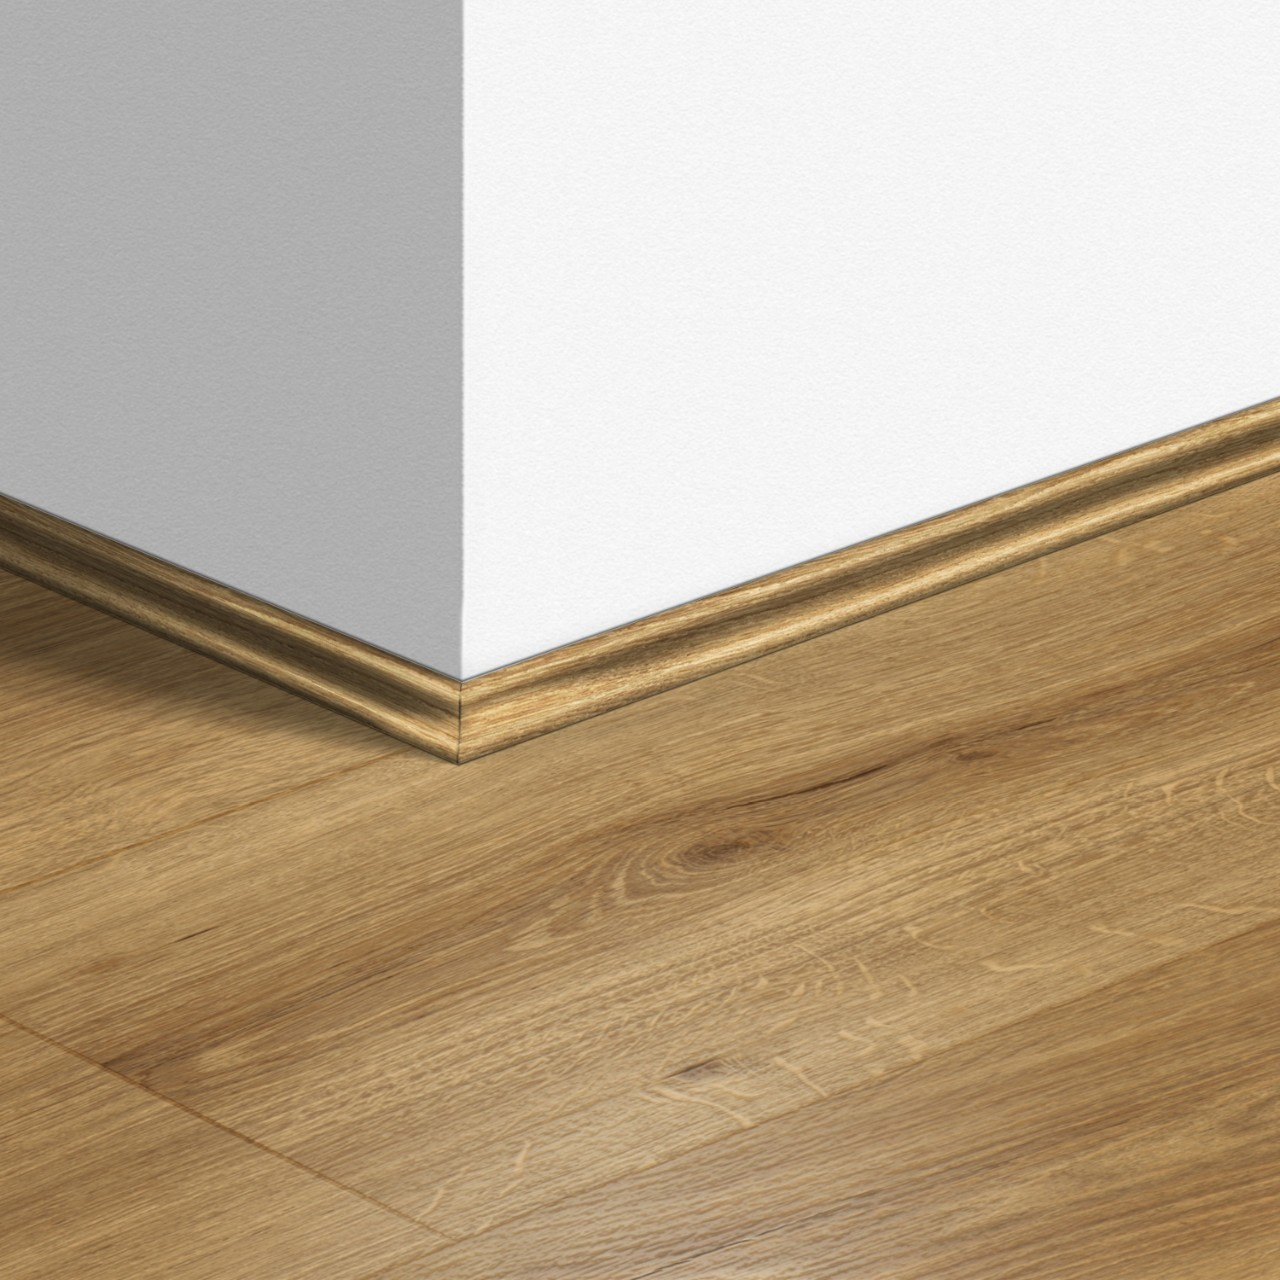 QSSCOT Laminate Accessories Desert Oak Warm Natural QSSCOT03551